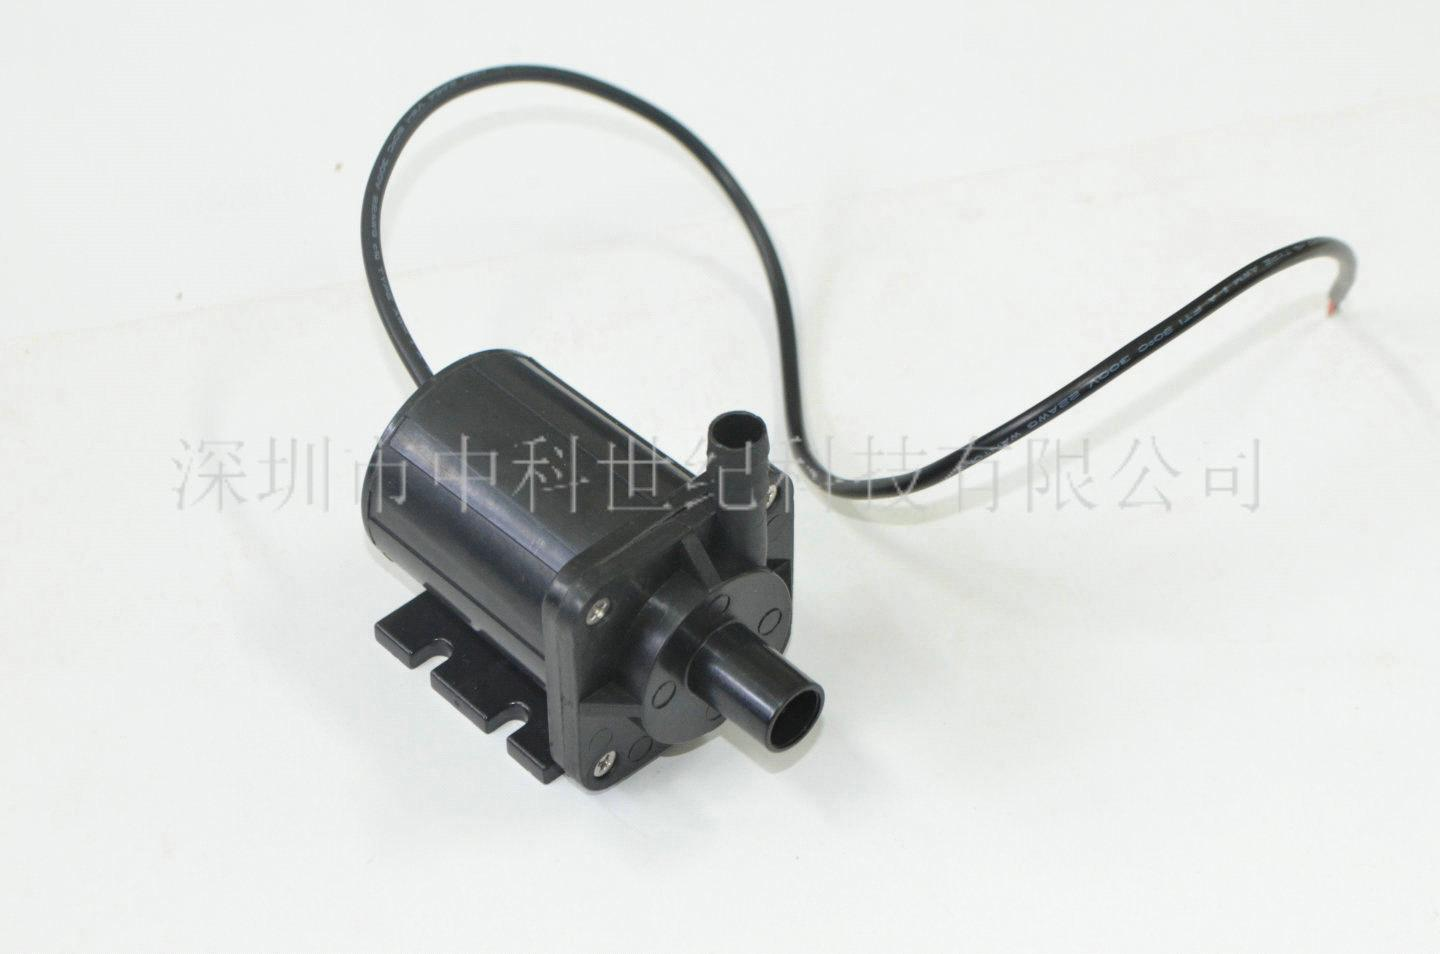 New dc cooling brushless 12v motor water pump 350ma1 5m for Dc motor water pump